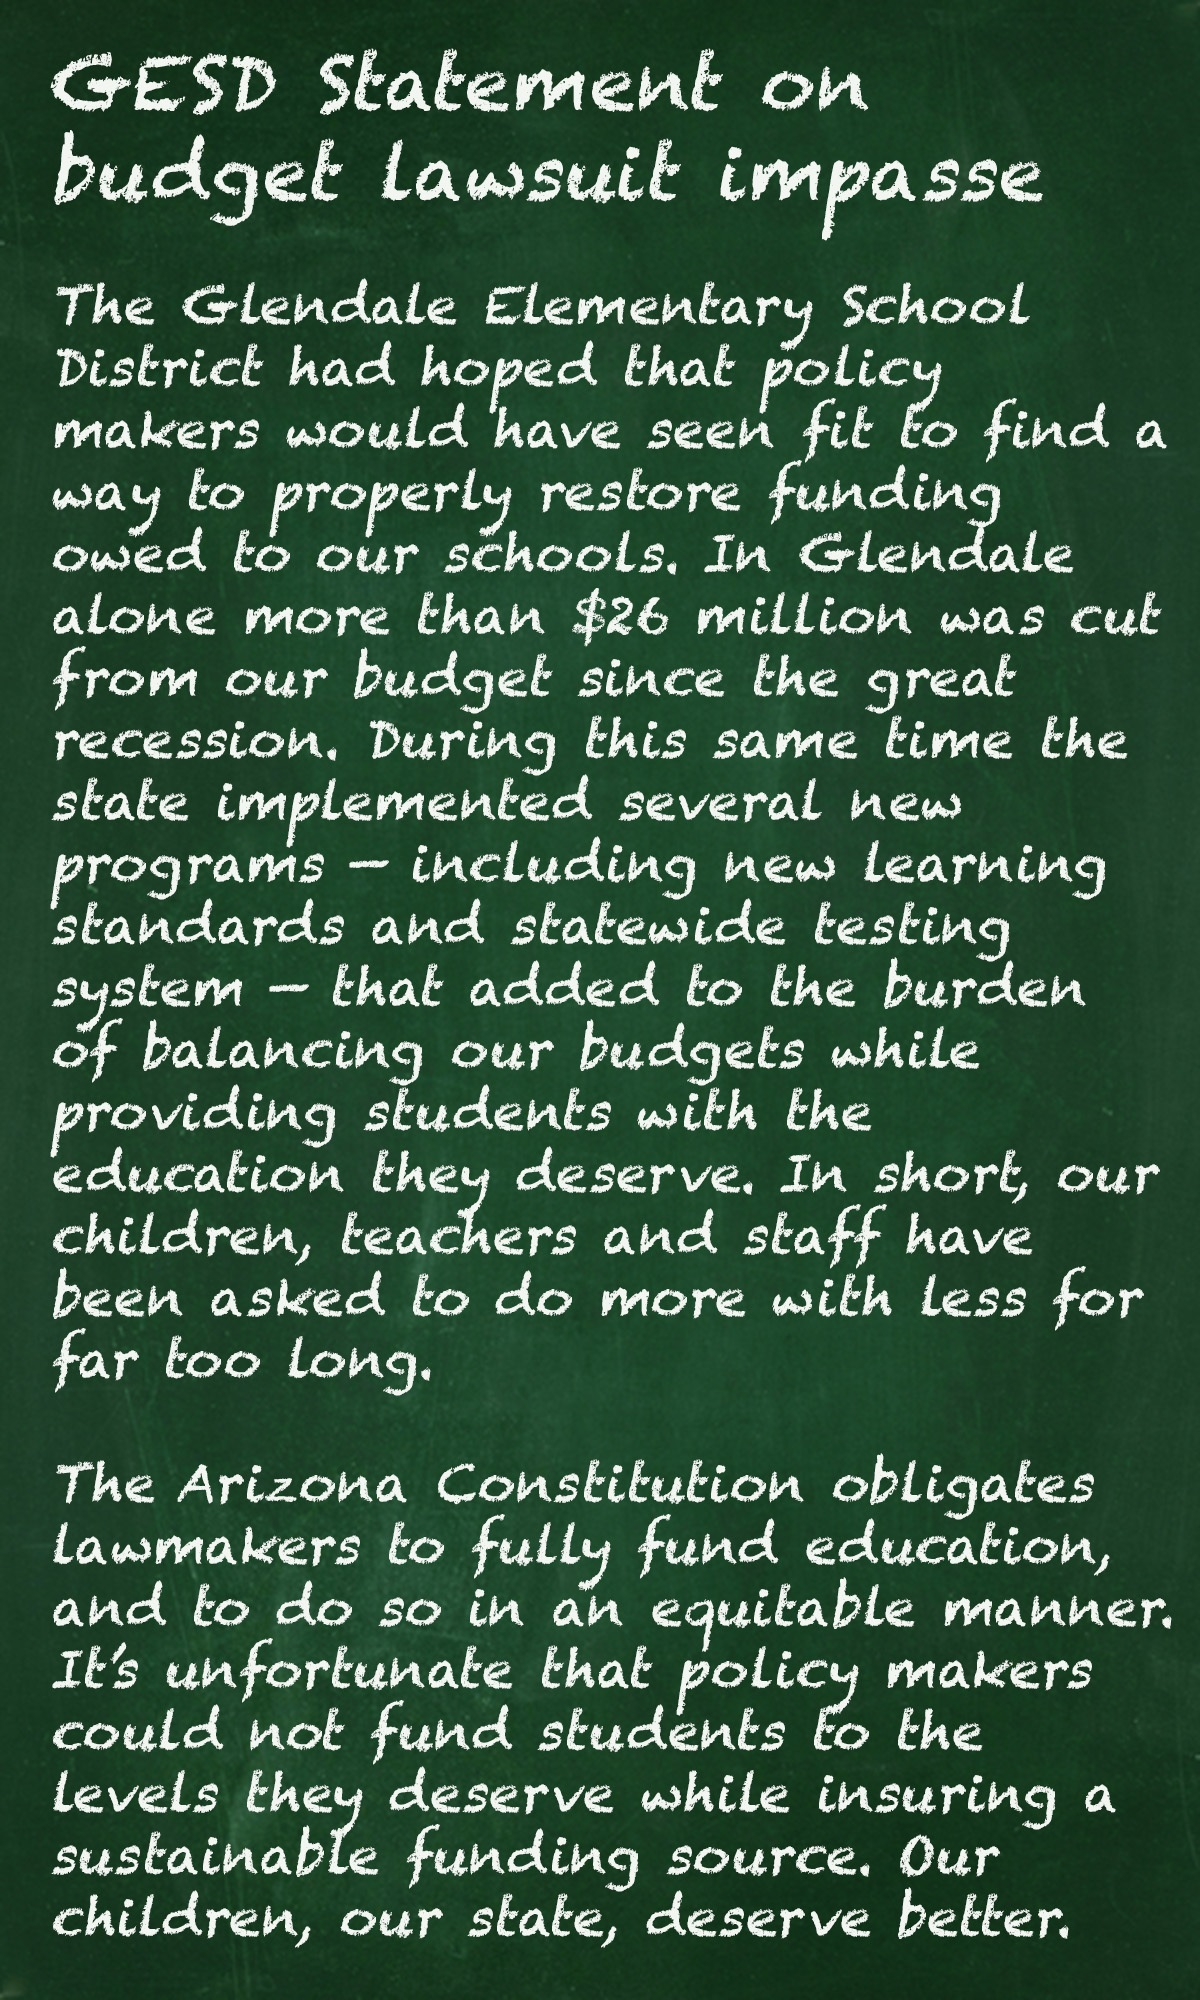 Impasse declared in public school inflation funding lawsuit Updated-GESDStatementGraphic